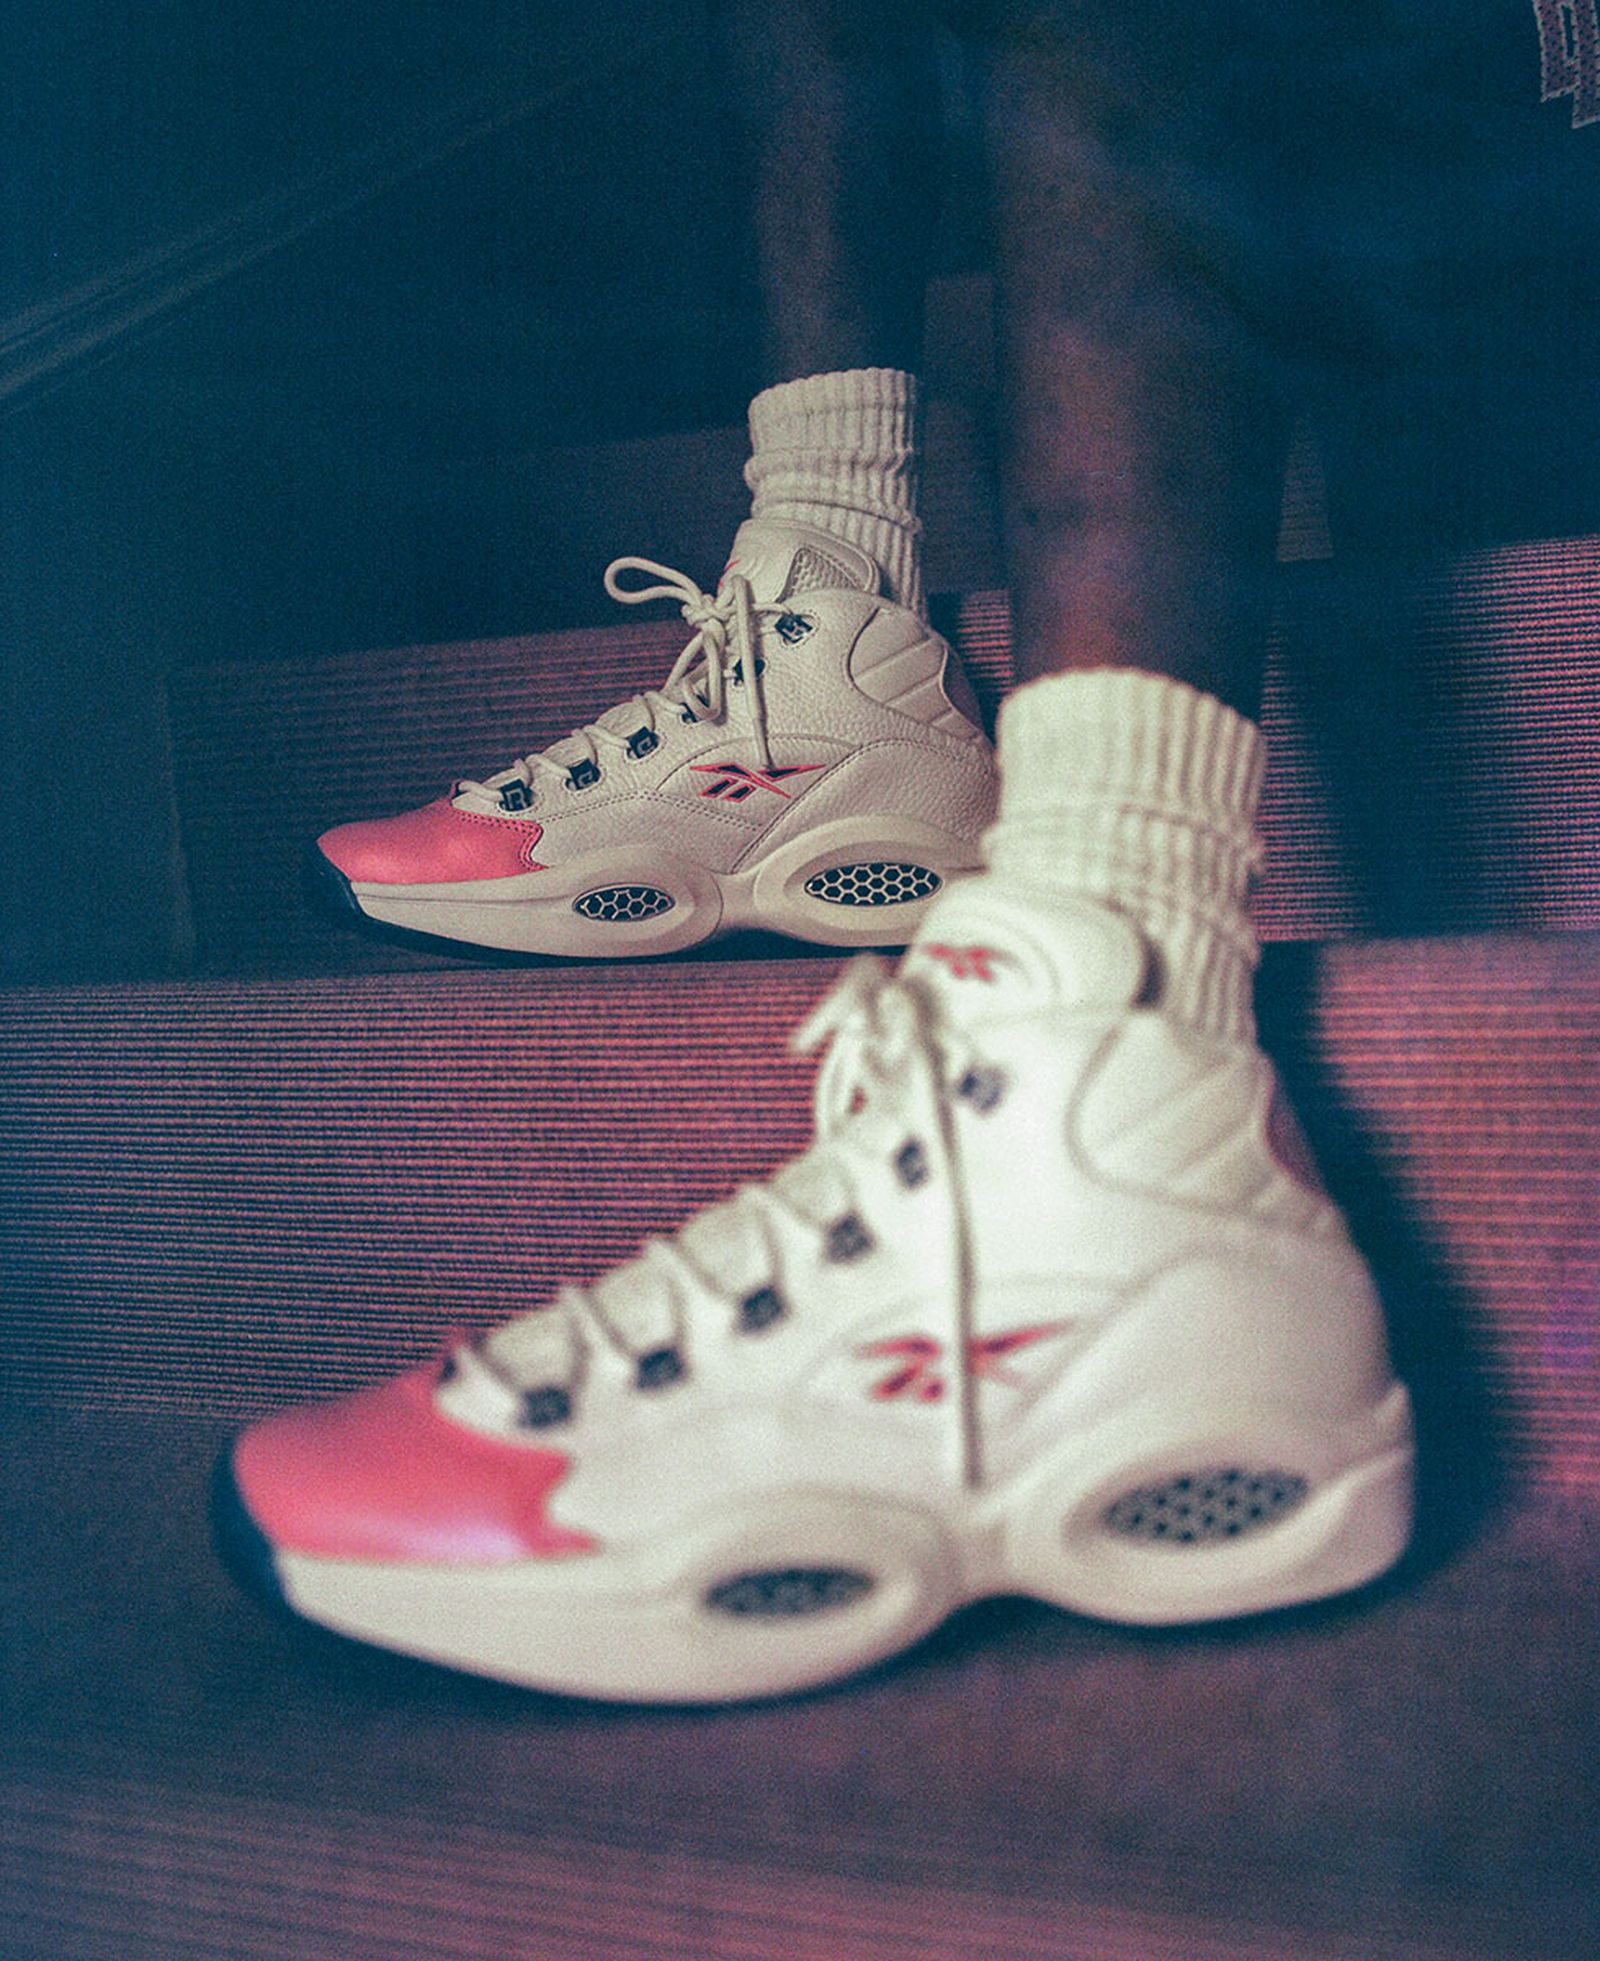 eric-emanuel-reebok-question-mid-release-date-price-03